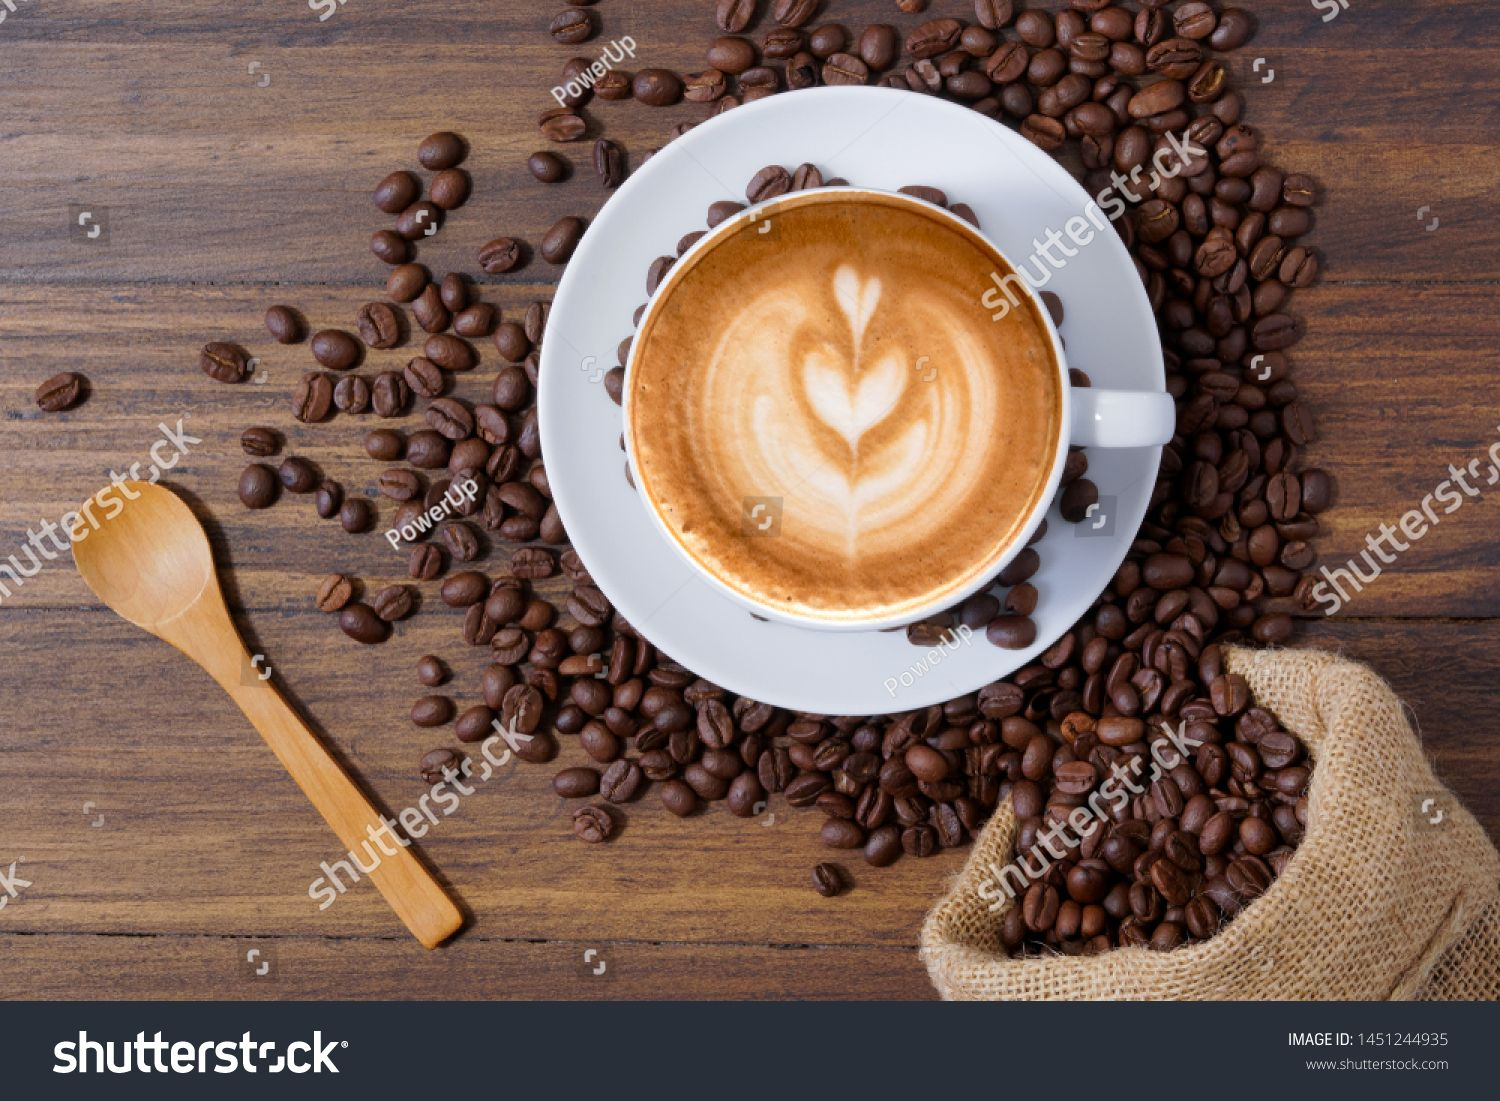 White Coffee Cup With Latte Art And Roasted Coffee Beans Around Sponsored Ad Cup Coffee White Latte White Coffee Cups Latte Art Roasted Coffee Beans